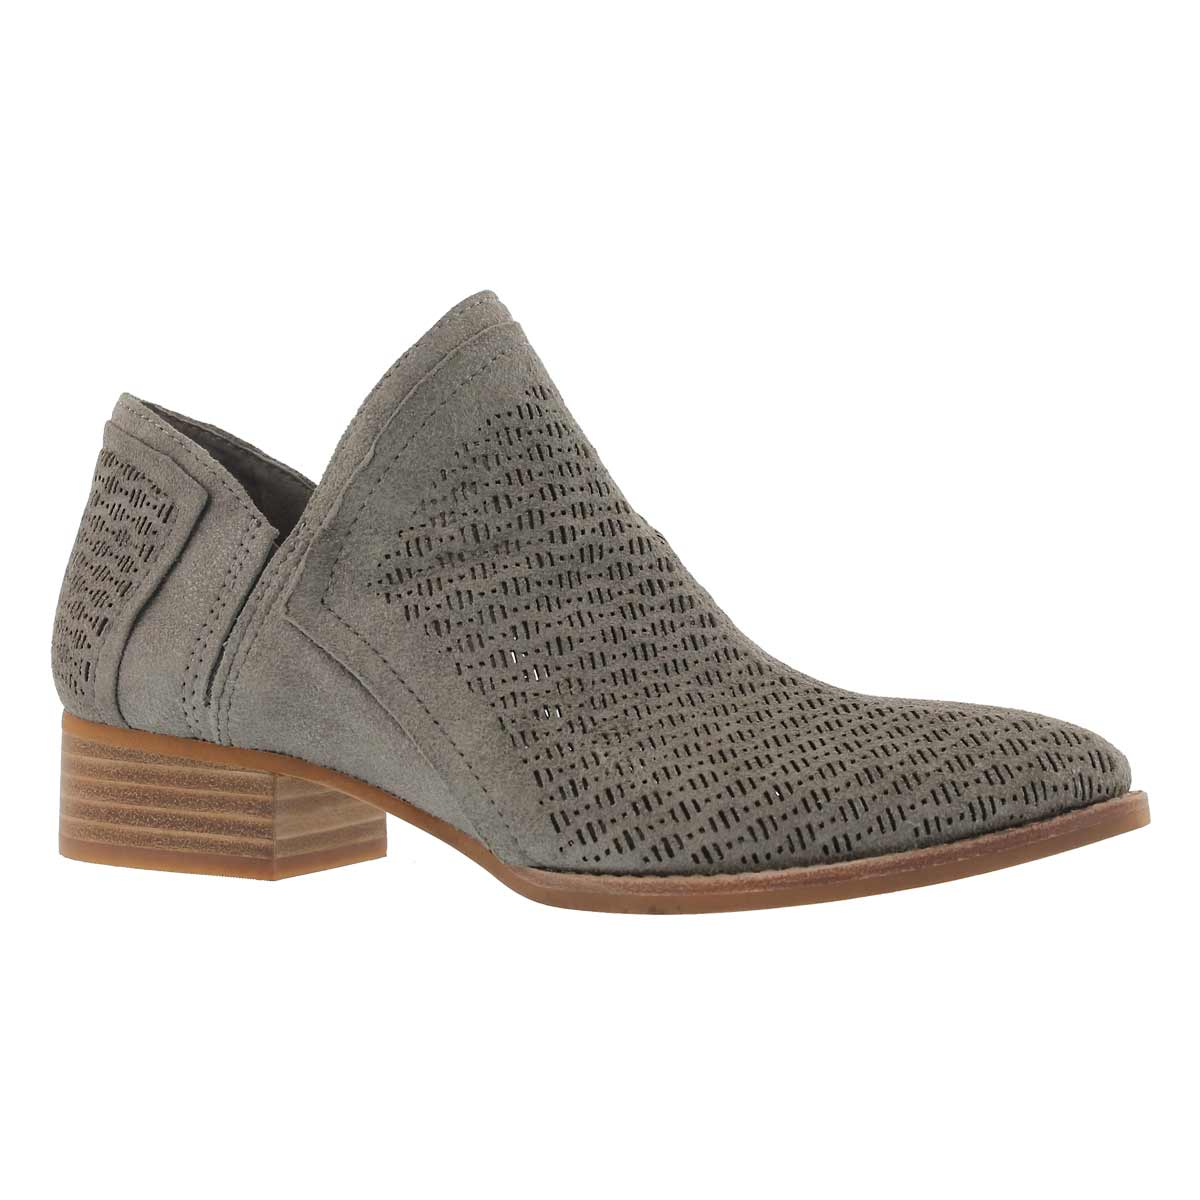 Women's CLORIEEA slip on casual booties